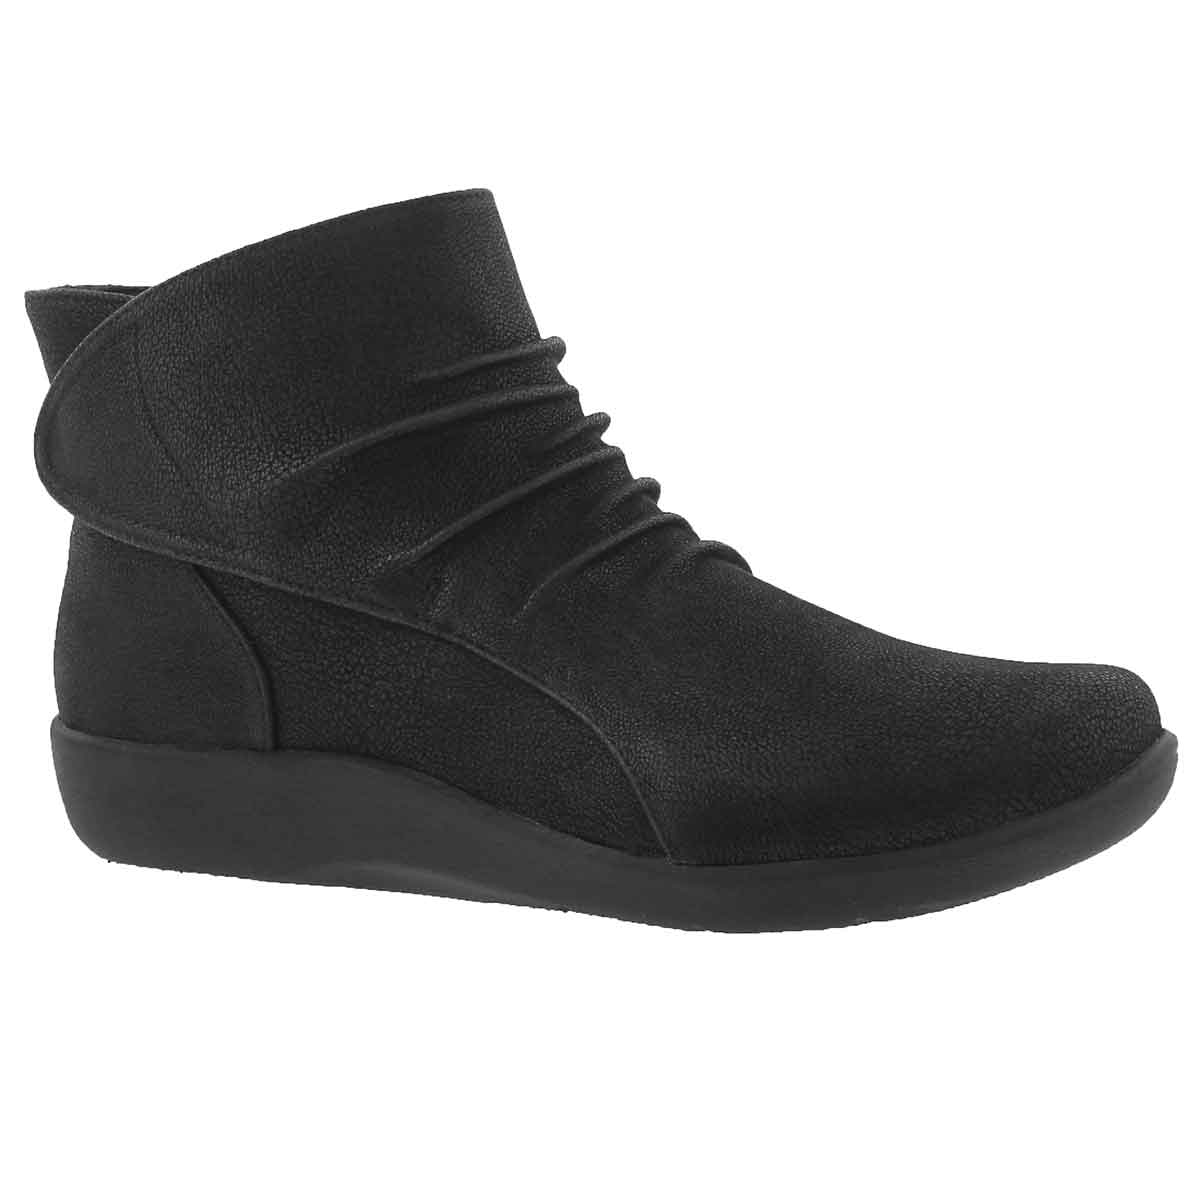 Women's SILLIAN SWAY black slip on boots